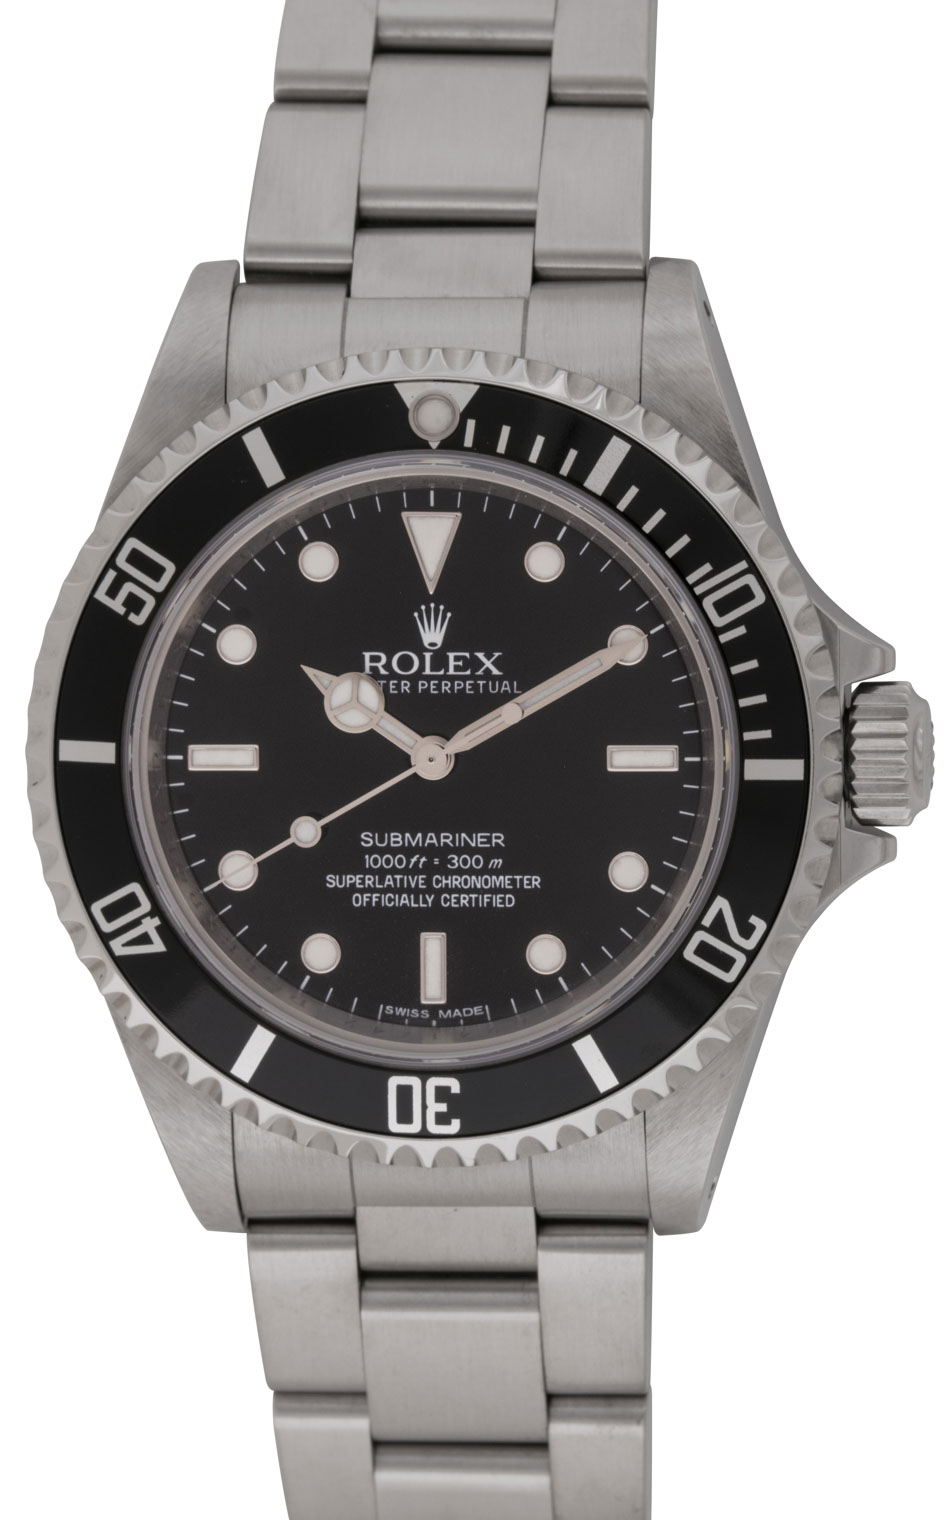 Rolex submariner 14060m bernard watch for Submarine watches